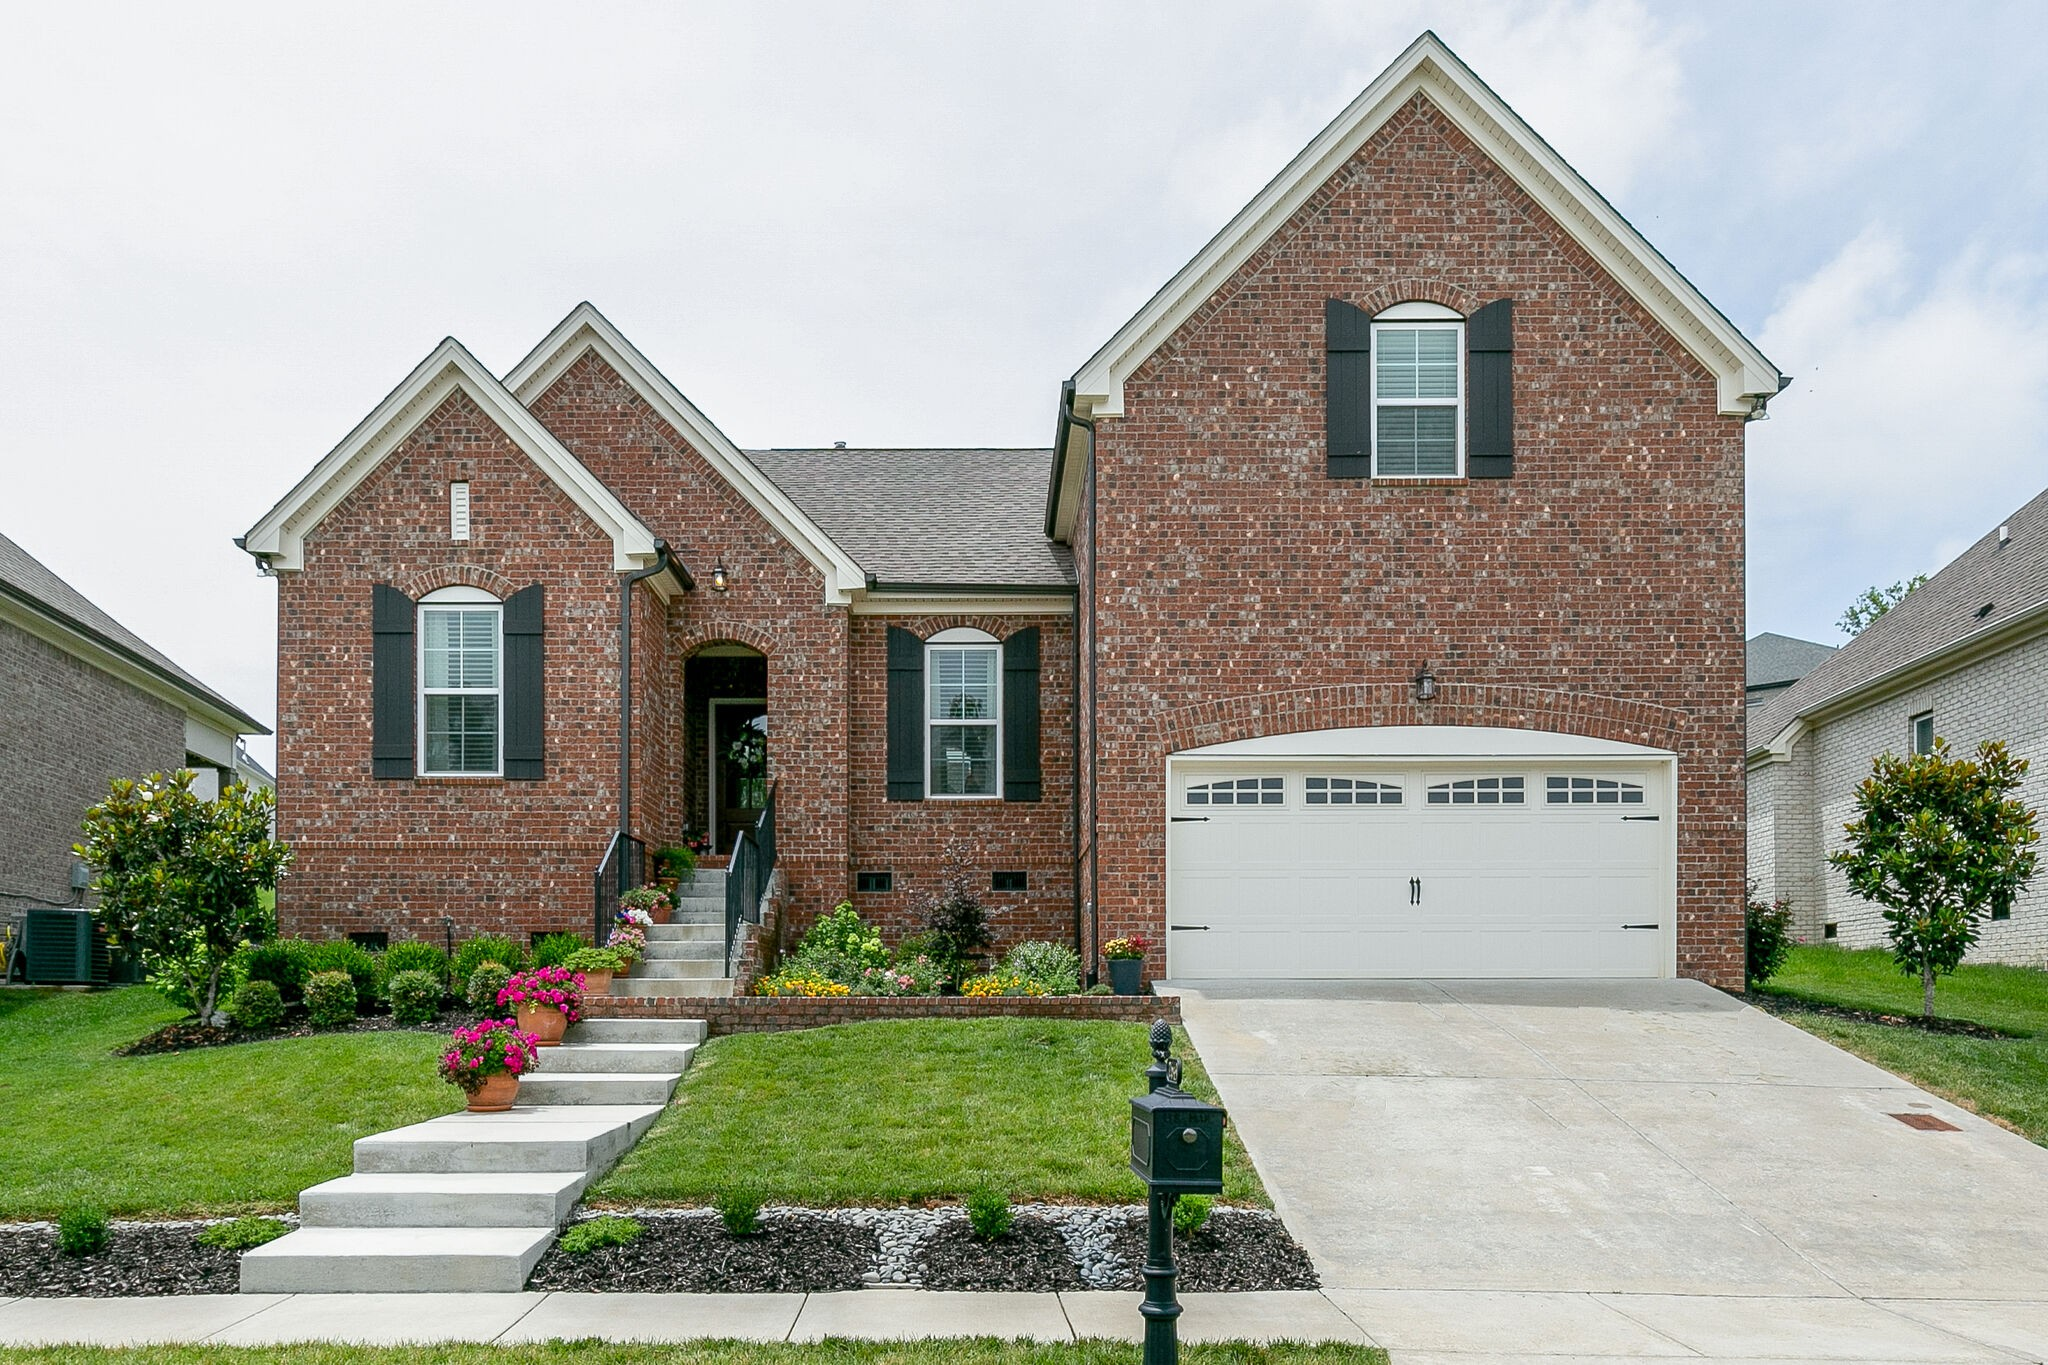 This amazing home is move-in ready & better than new! 3 or 4BR w/2 on main level. Tons of upgrades including custom lighting, custom roman shades, blinds, surround sound, extensive hardwoods, custom built-ins, vaulted ceilings, designer lighting & mirrors & gas fireplace. Kitchen w/ white cab, double ovens, 2 pantries, & wall treatments. Master bath w double vanities, walk thru shower, soaker tub, & walk in closet. New landscaping and screened porch. Hurry this won't last long. Virtual Tour